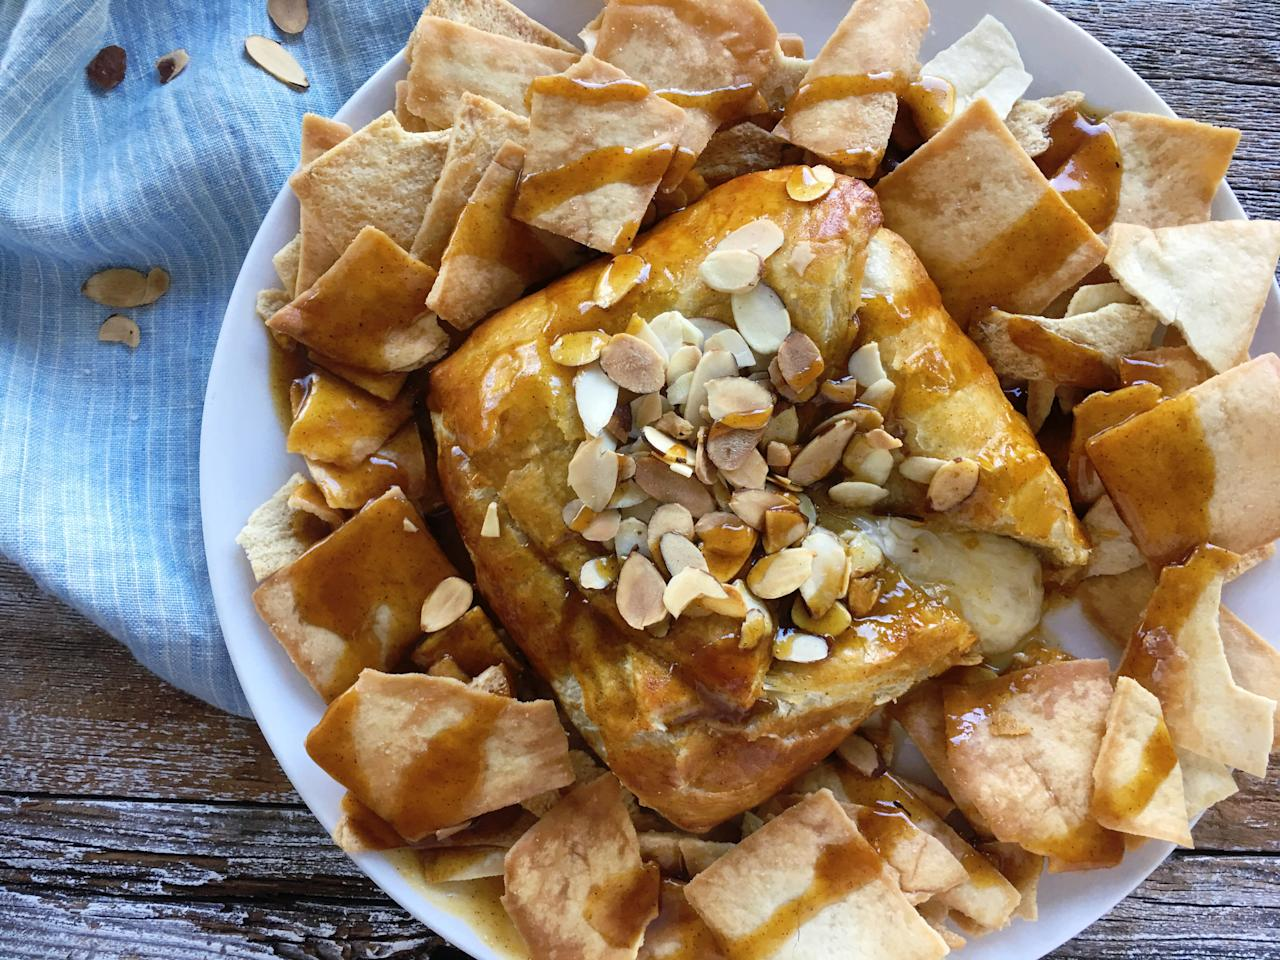 """<p>Your friends will be astonished at the ease and delight that baked brie brings to the table before dinner is served. It's the perfect mix of sweet and salty with benefit of a warm, gooey inside and a crispy, flaky crust on the outside. Store-bought puff pastry wraps around the entire wheel of brie, and it's finished with a drizzle of the pumpkin-spiced maple sauce that's decadent and sweetened with maple syrup. With a sprinkle of a few sliced almonds for a crunchy texture and a rich, nutty flavor, this starter is ideal menu item to any fall themed meal.</p> <p><a href=""""https://www.myrecipes.com/recipe/baked-brie-with-pumpkin-maple-sauce"""">Baked Brie with Pumpkin Maple Sauce&nbsp; Recipe</a></p>"""